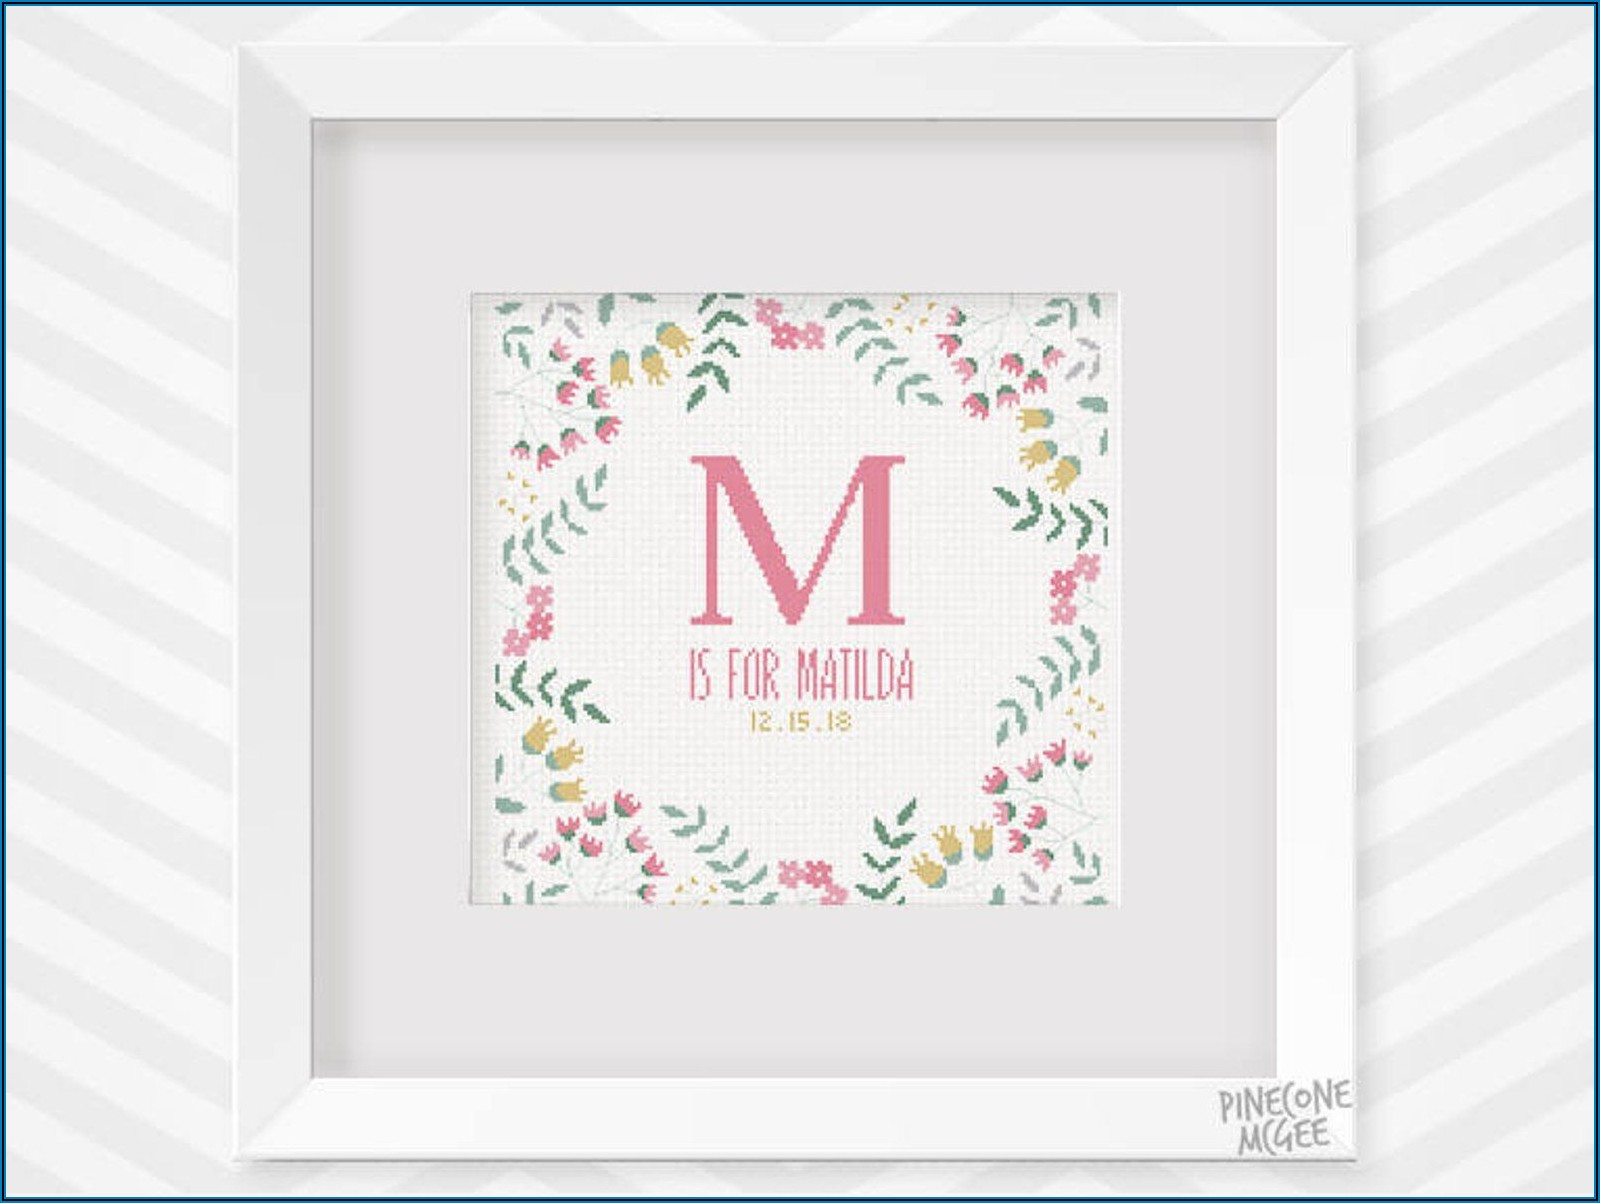 Counted Cross Stitch Birth Announcement Patterns